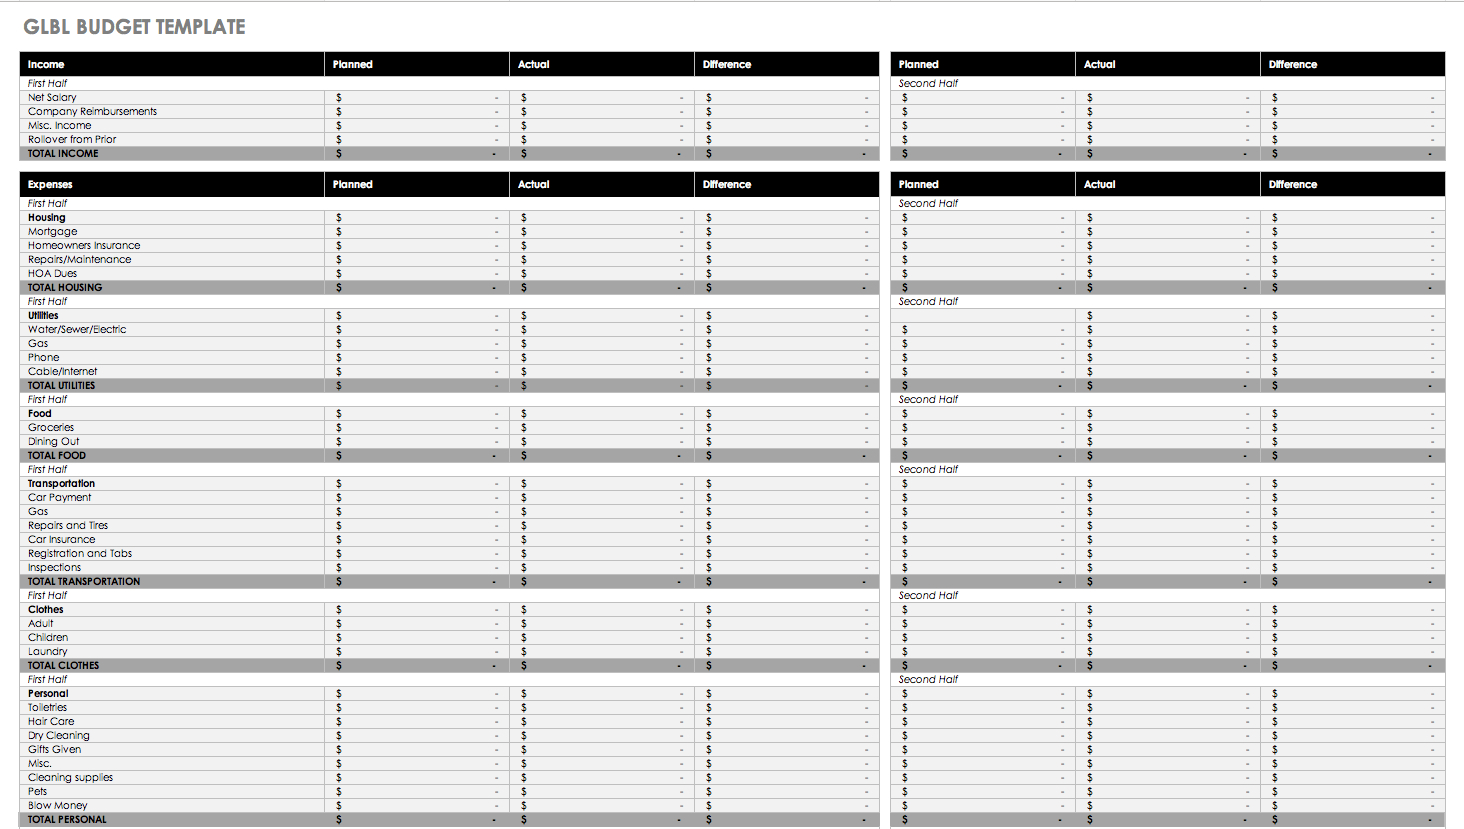 Free Monthly Budget Templates | Smartsheet With Regard To Free Monthly Budget Spreadsheet Template